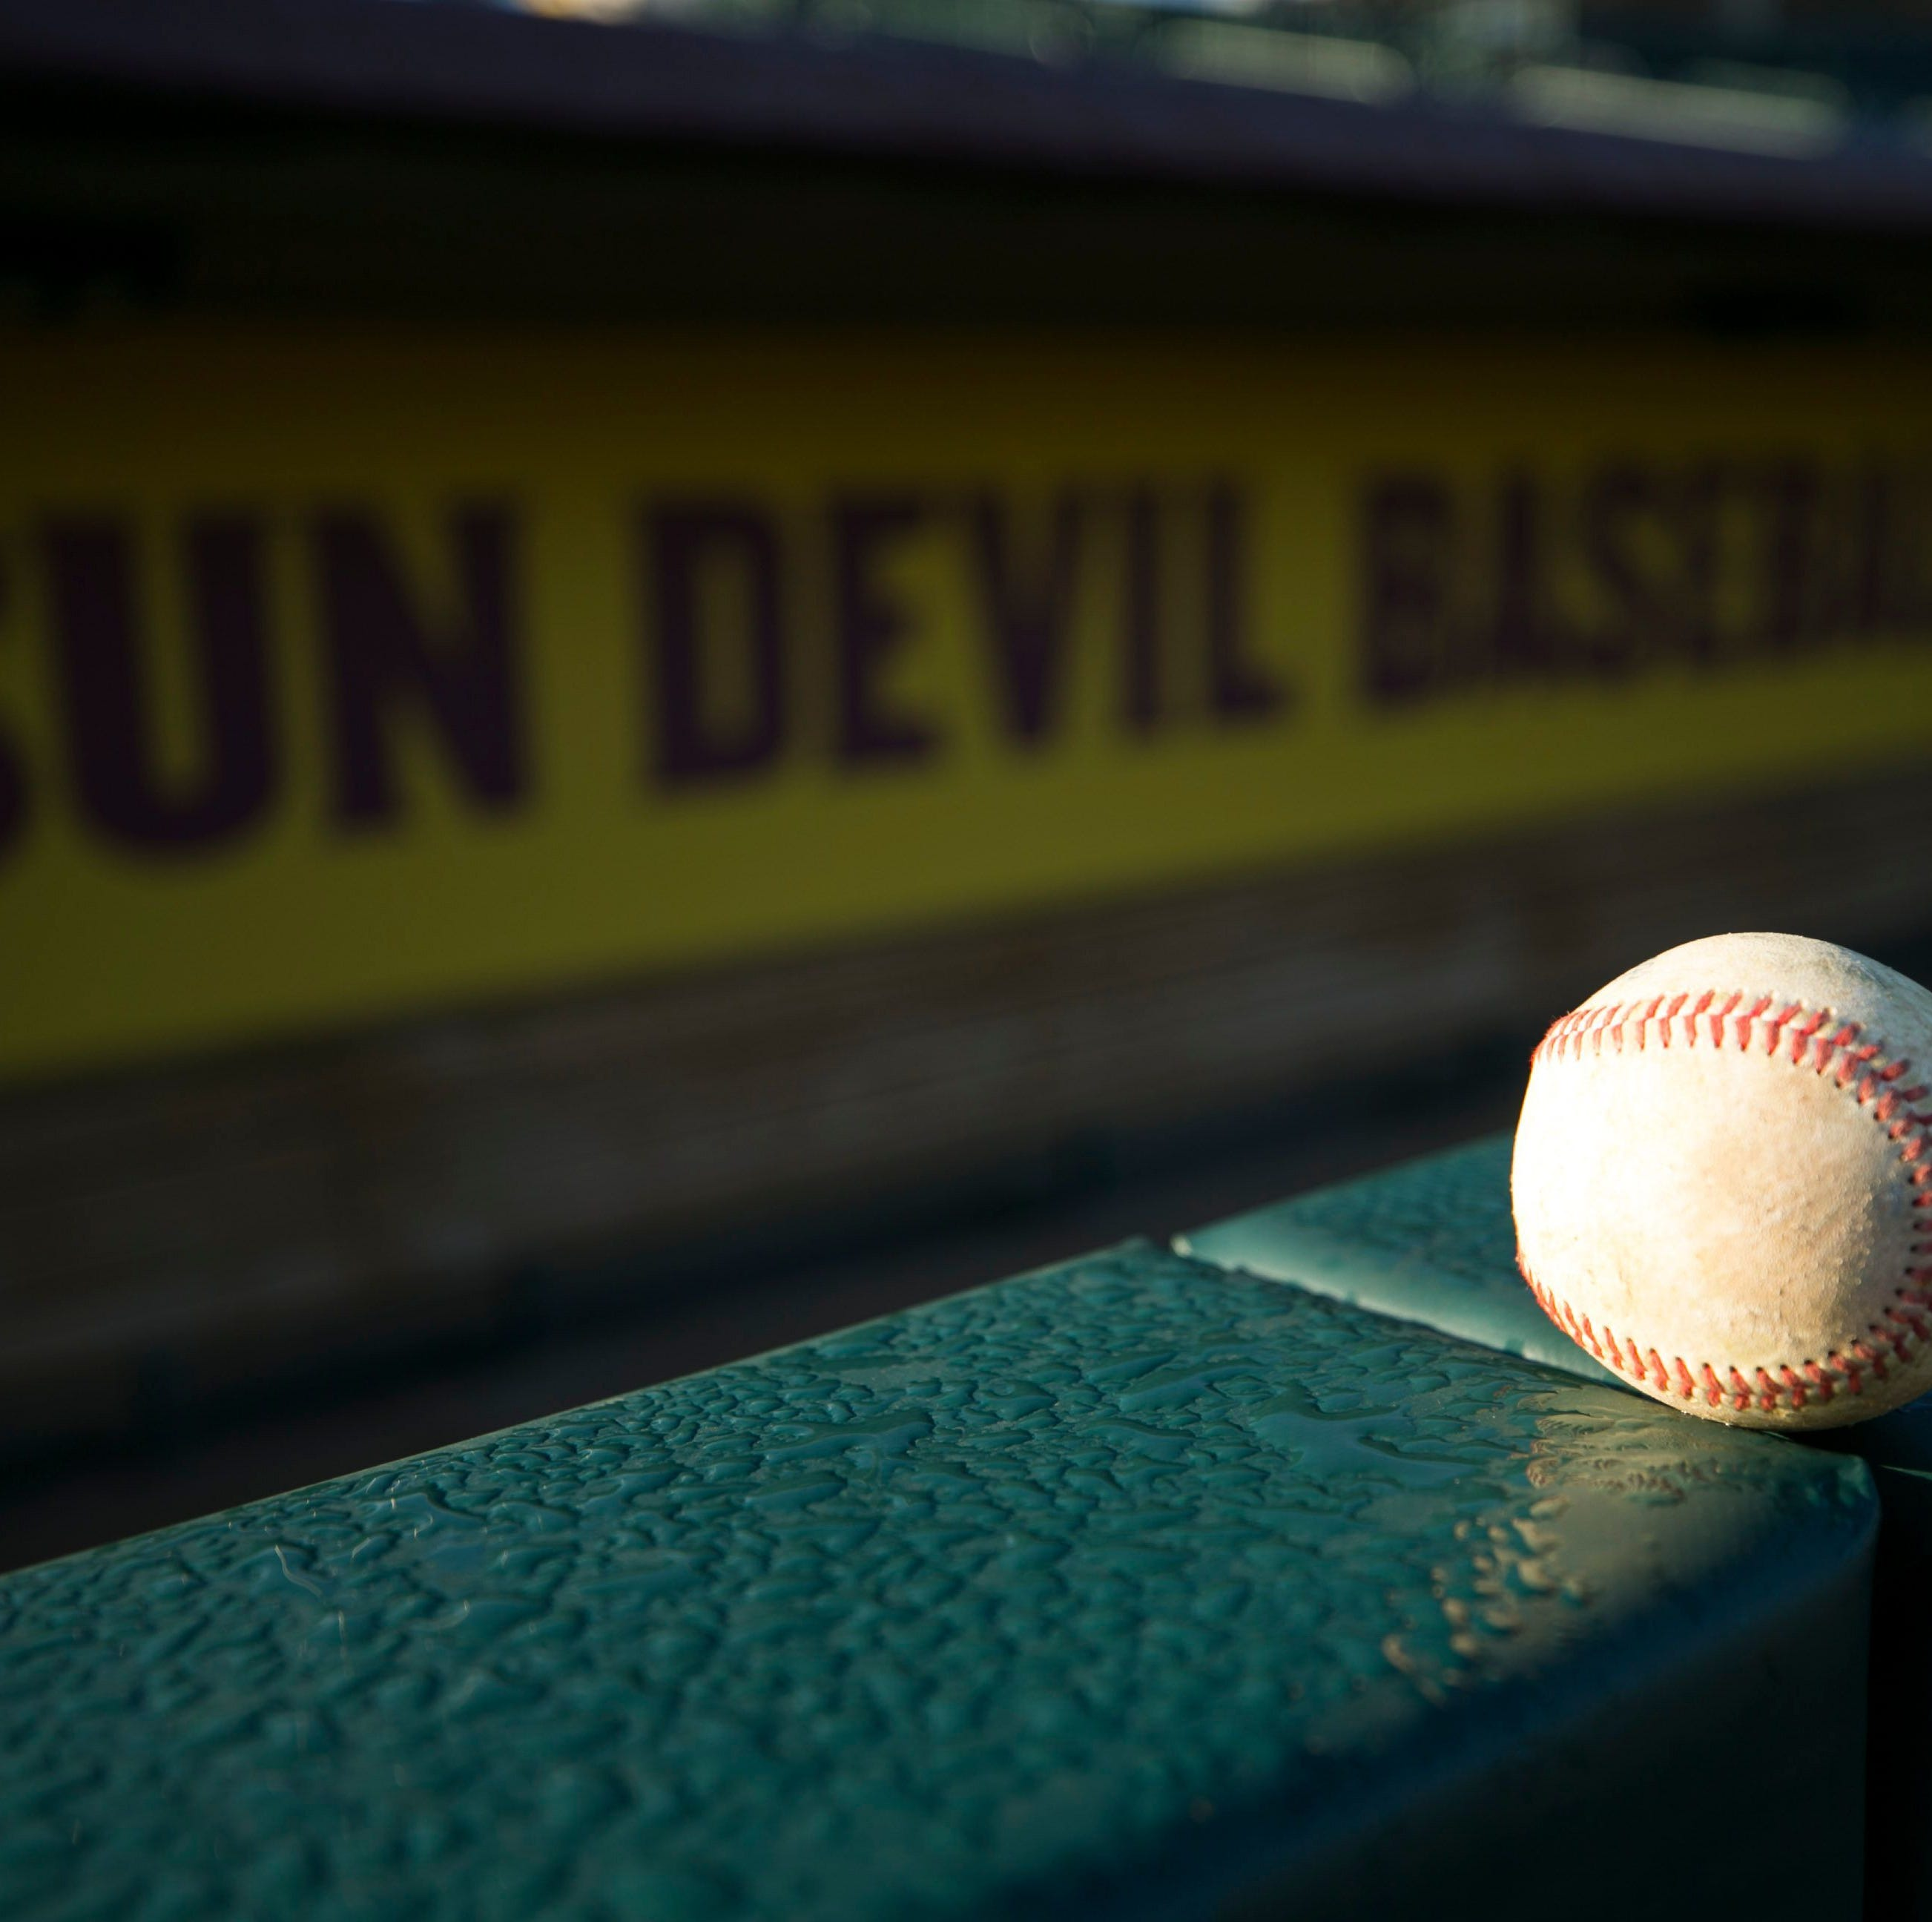 ASU baseball improves to 17-0 with win in Pac-12 opener, Gage Workman homers twice